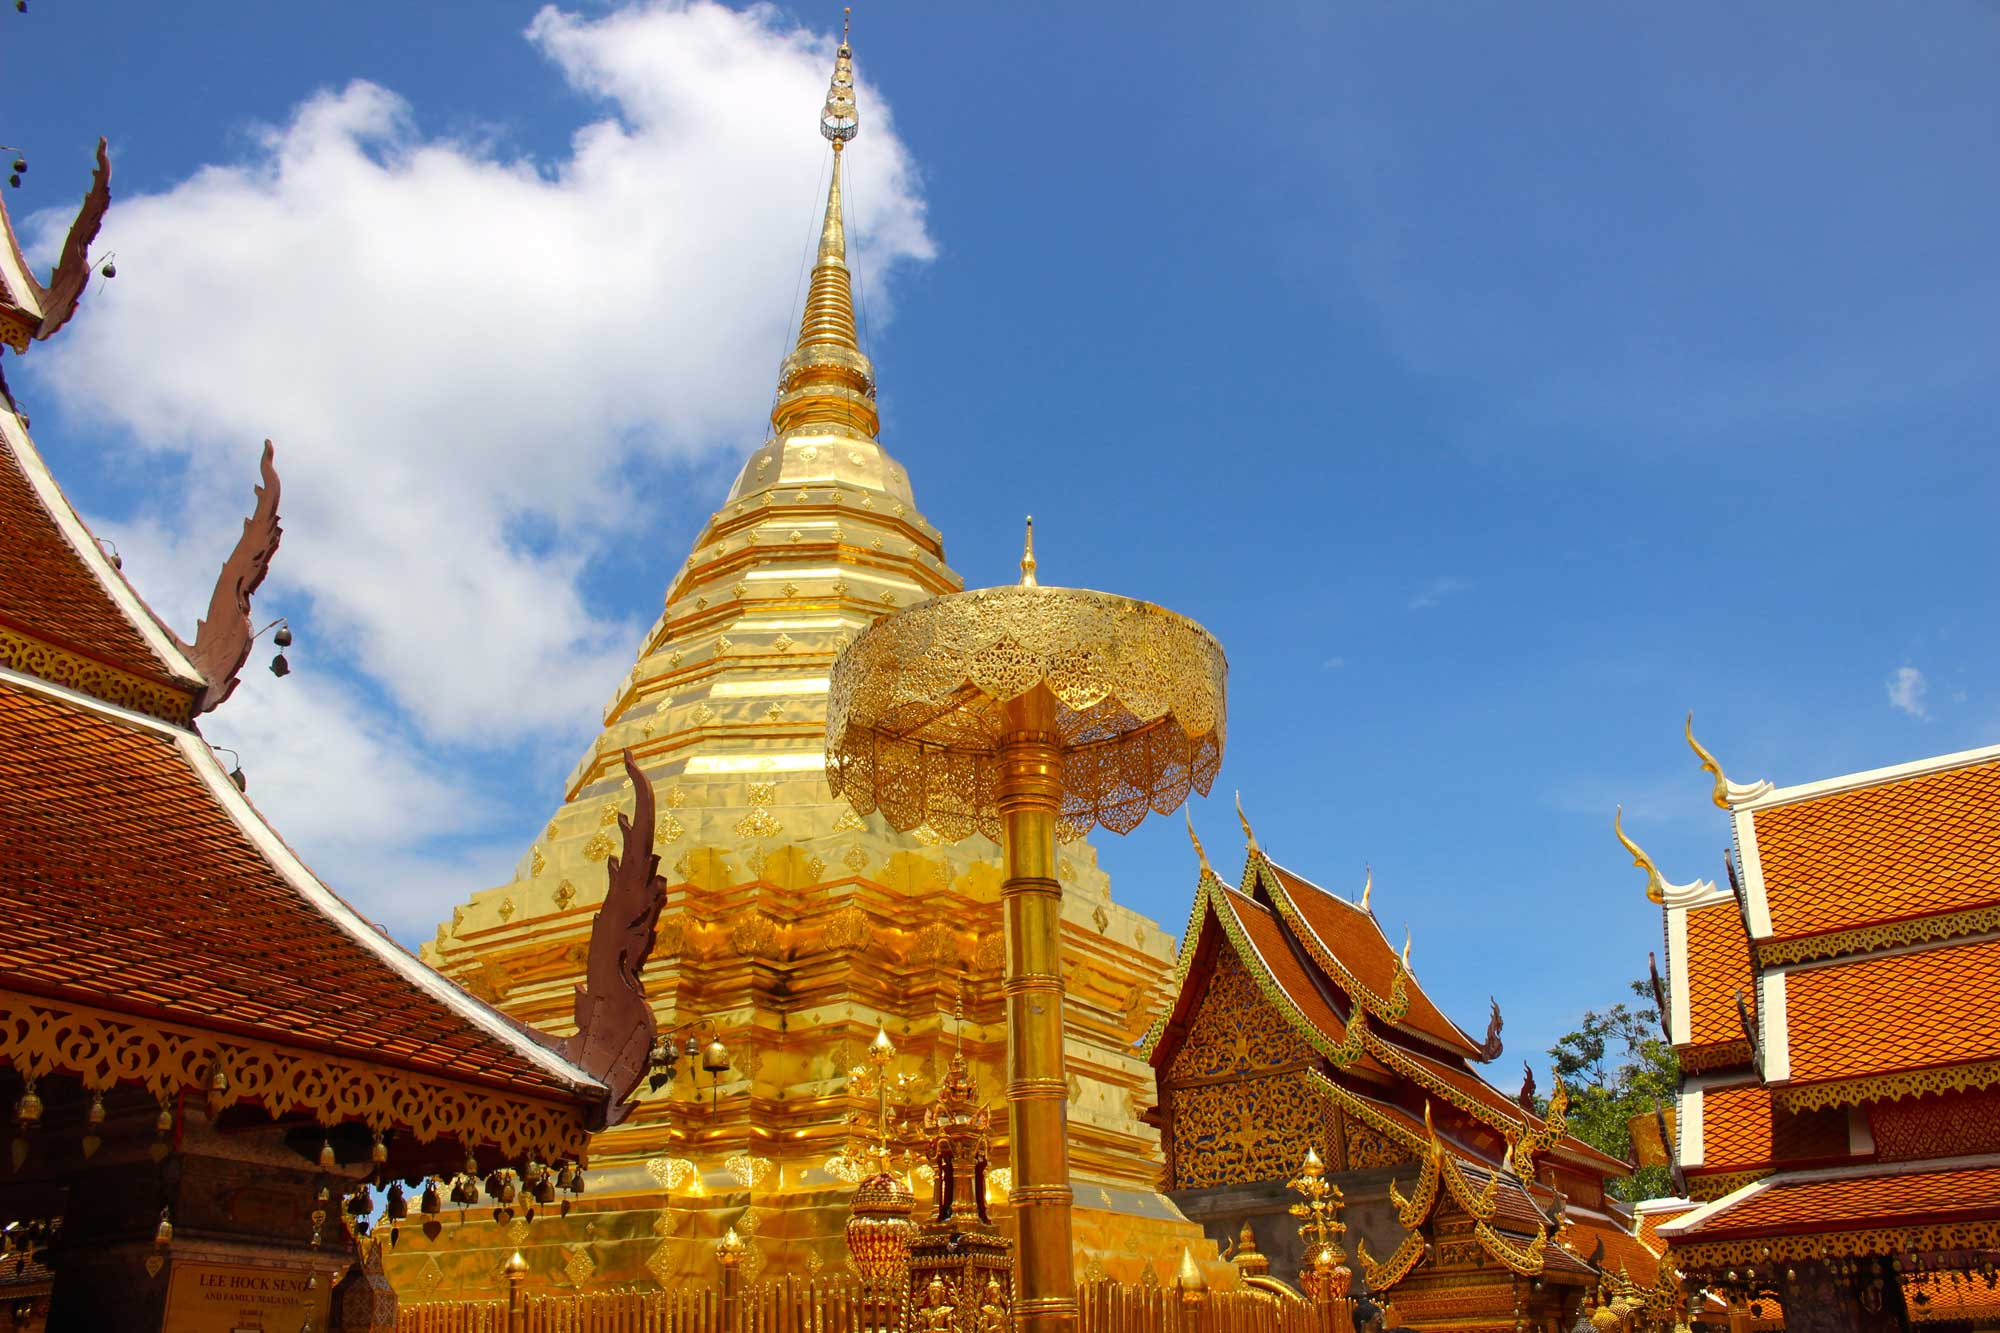 The Golden Temple: Chiang Mais Wat Prathat Doi Suthep